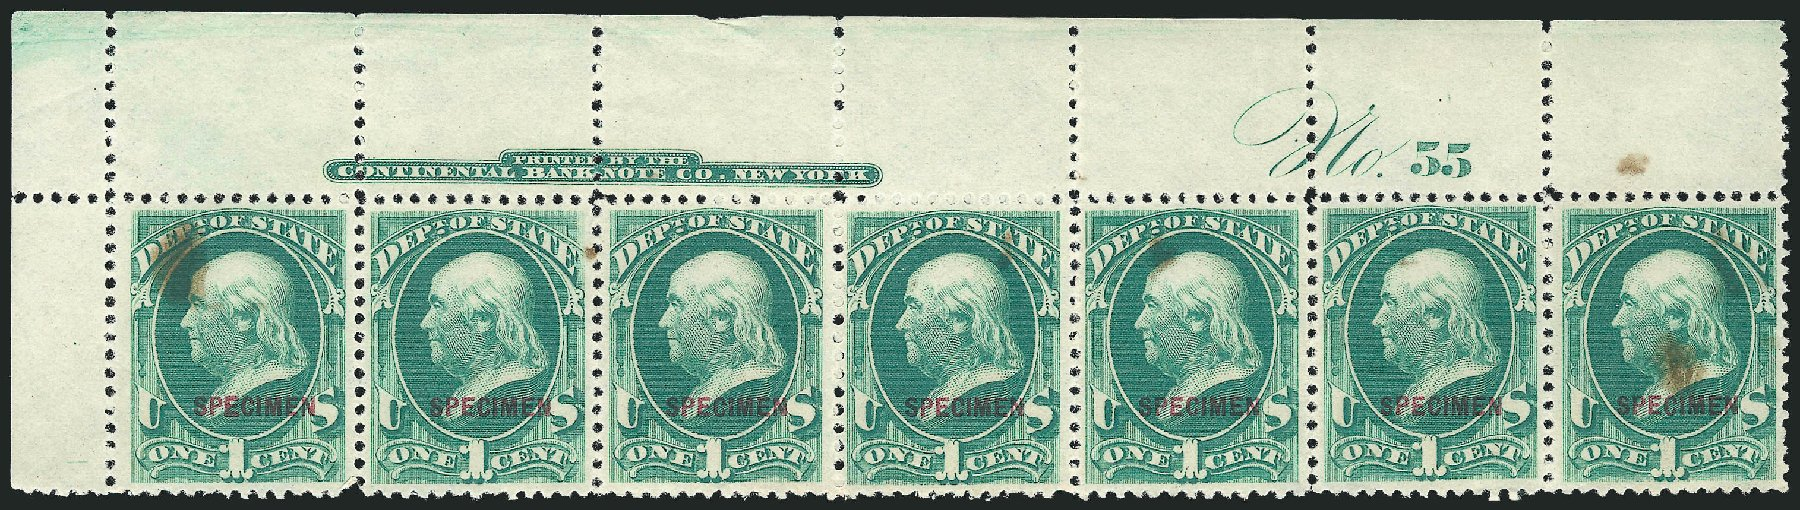 Costs of US Stamp Scott Cat. # O57: 1c 1873 State Official. Robert Siegel Auction Galleries, Mar 2015, Sale 1095, Lot 669